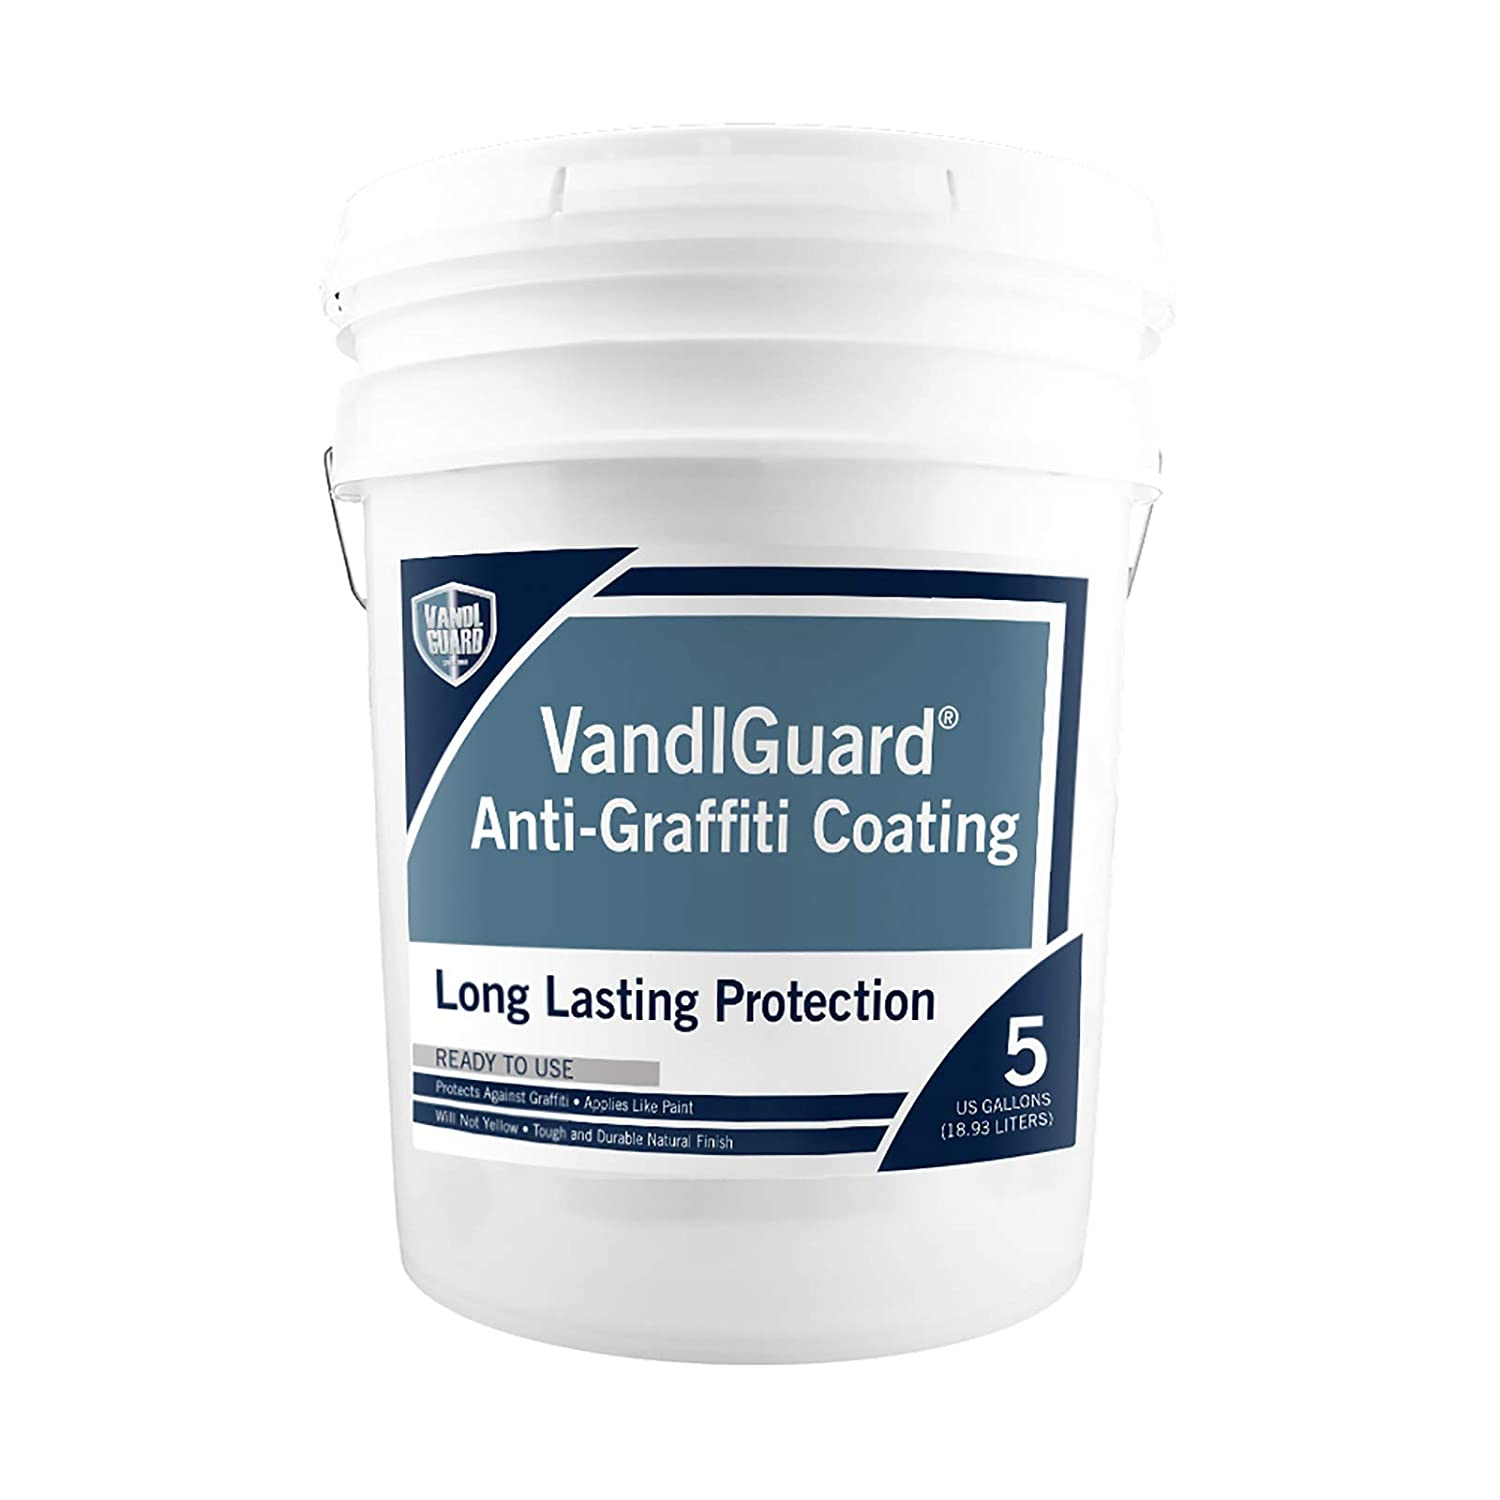 Rain Guard Water Sealers VG-7000 VandlGuard Non-Sacrificial Anti-Graffiti Coatings READY TO USE covers up to 1500 sq. on painted and unpainted surfaces. 5 Gallon – Graffiti Protection